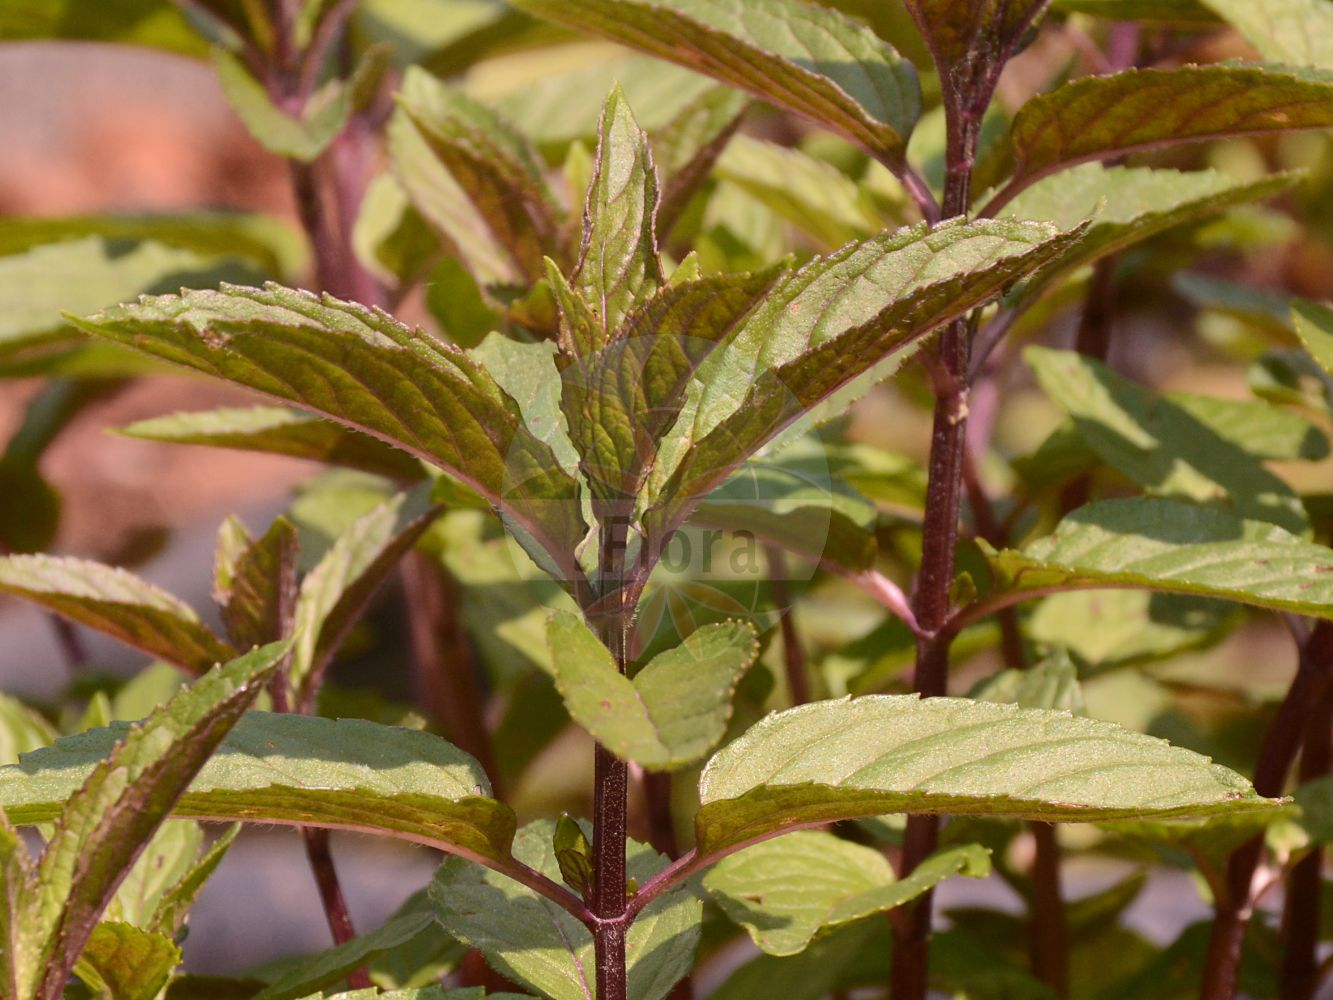 Foto von Mentha piperita (Pfeffer-Minze - Chocolate Mint). Das Foto wurde in Wien, Österreich aufgenommen. ---- Photo of Mentha piperita (Pfeffer-Minze - Chocolate Mint).The picture was taken in Vienna, Austria.(Mentha piperita,Pfeffer-Minze,Chocolate Mint,Mentha,Minze,Mint,Lamiaceae,Lippenbluetengewaechse;Lippenbluetler,Nettle family)